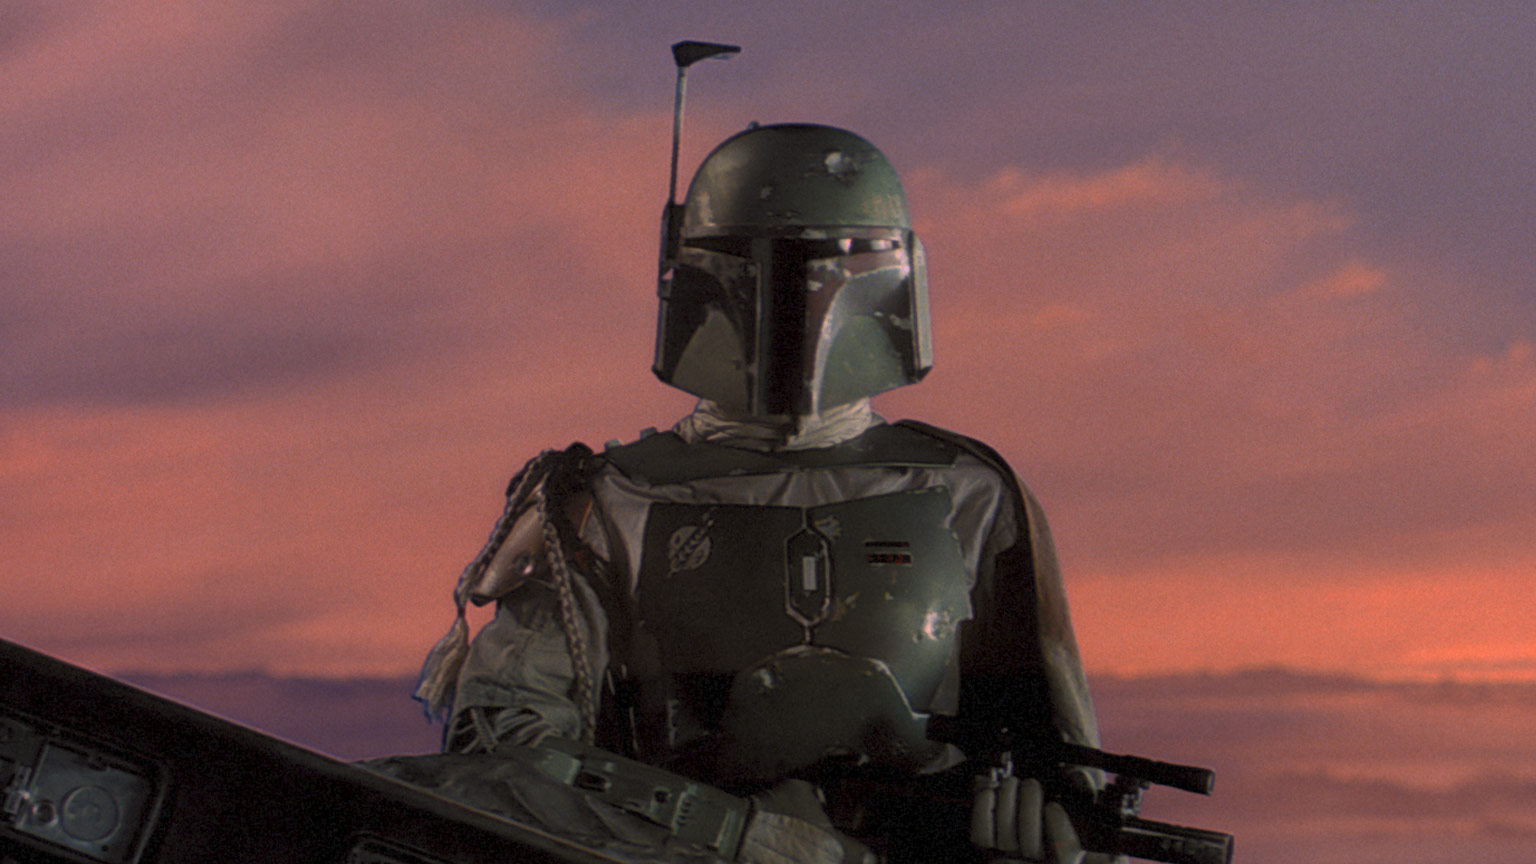 Boba Fett watches as Han is loaded into the Slave I in Star Wars: The Empire Strikes Back.